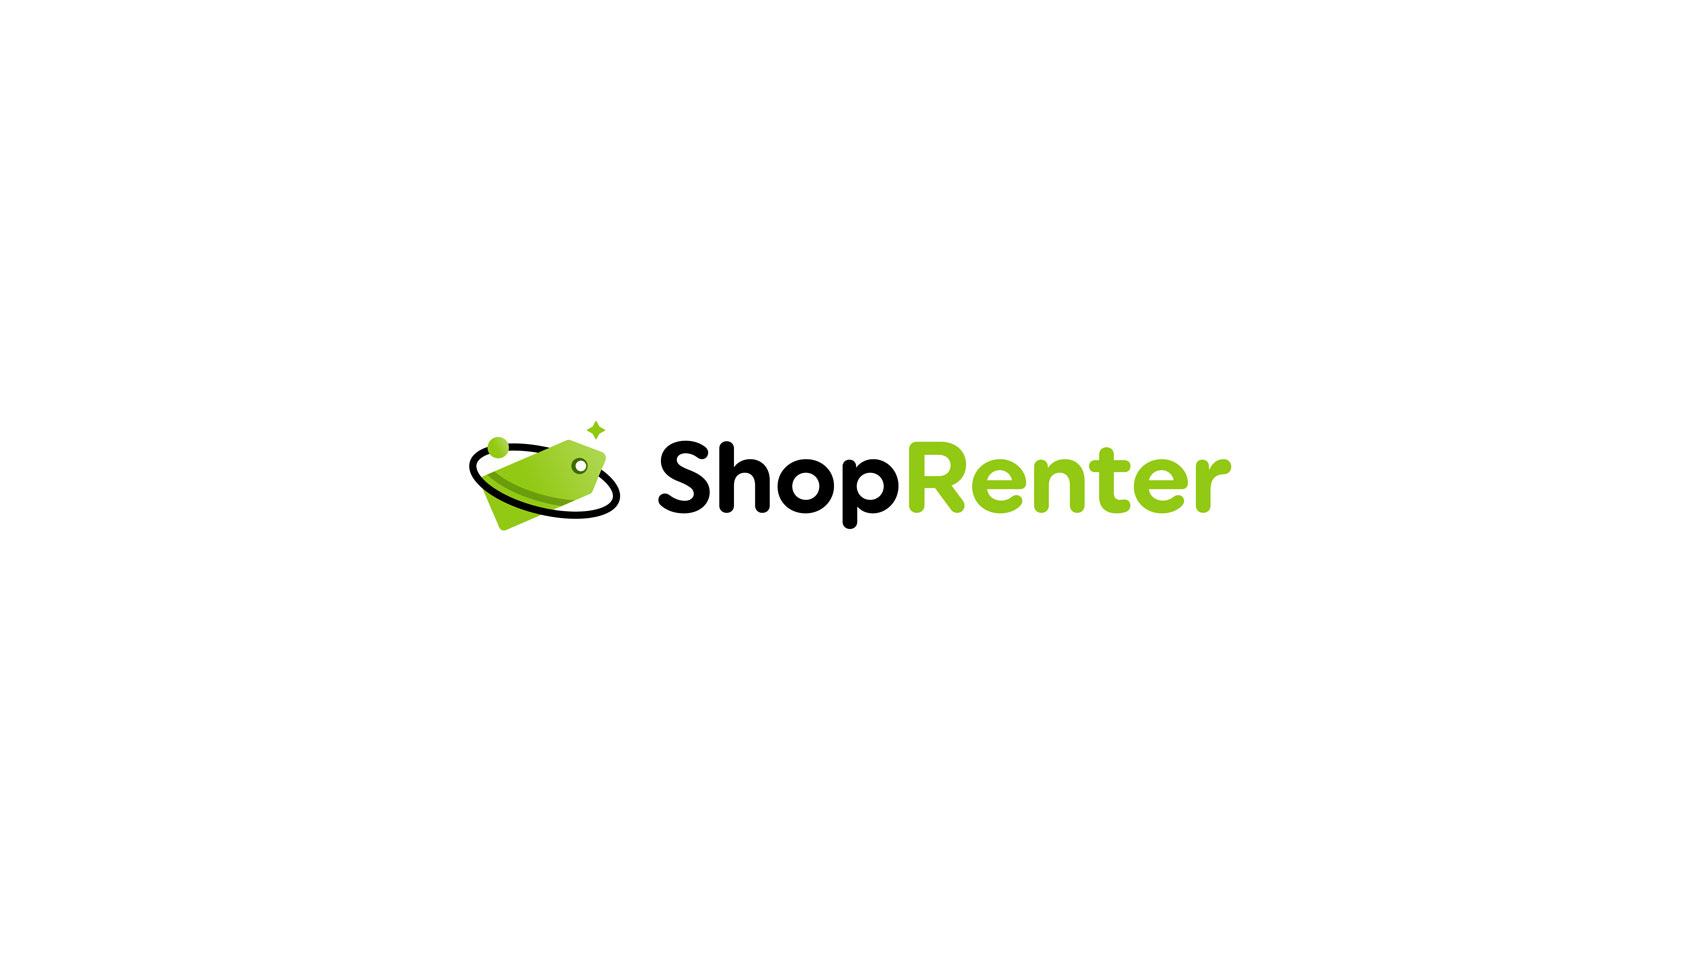 Shoprenter logo design